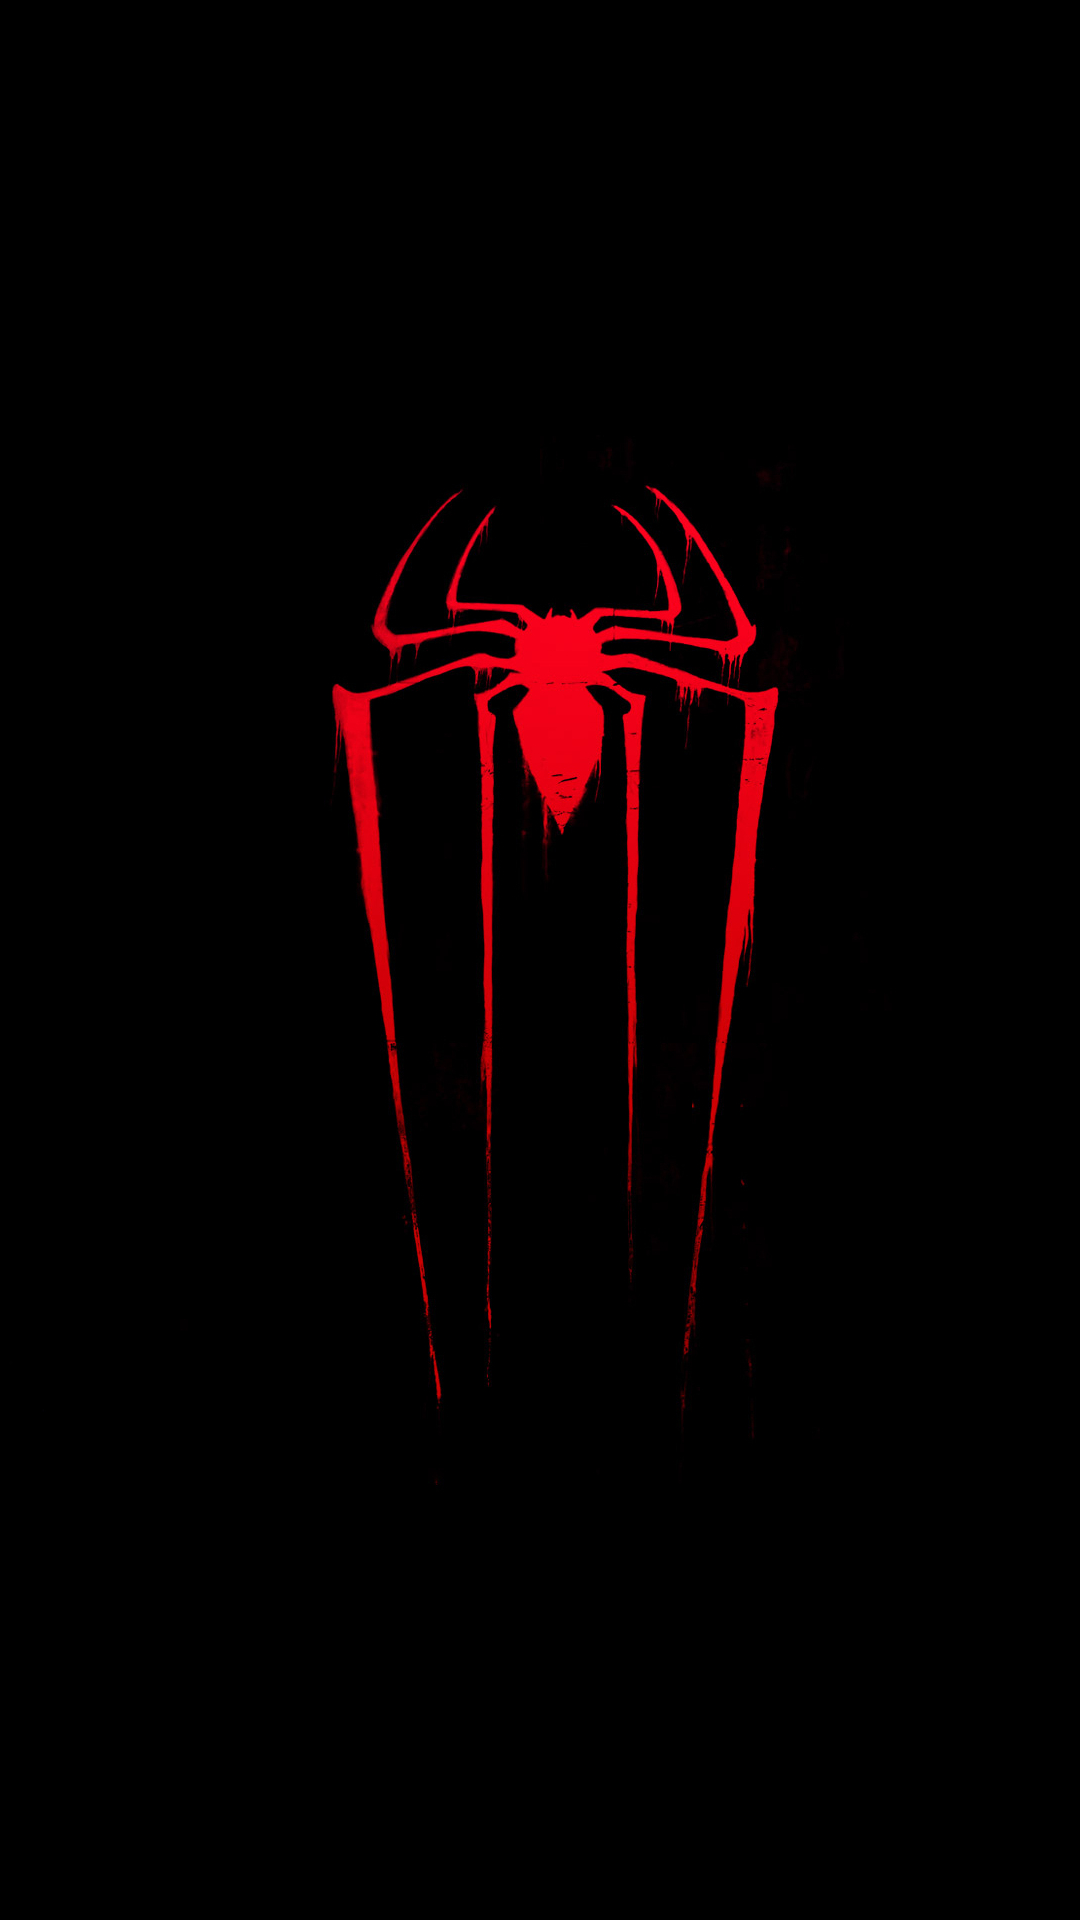 Good Wallpaper Naruto Amoled - spiderman-wallpaper-194_ddbef65ad8823e36c563490dfecb1b71_raw  Pictures_672665.jpg